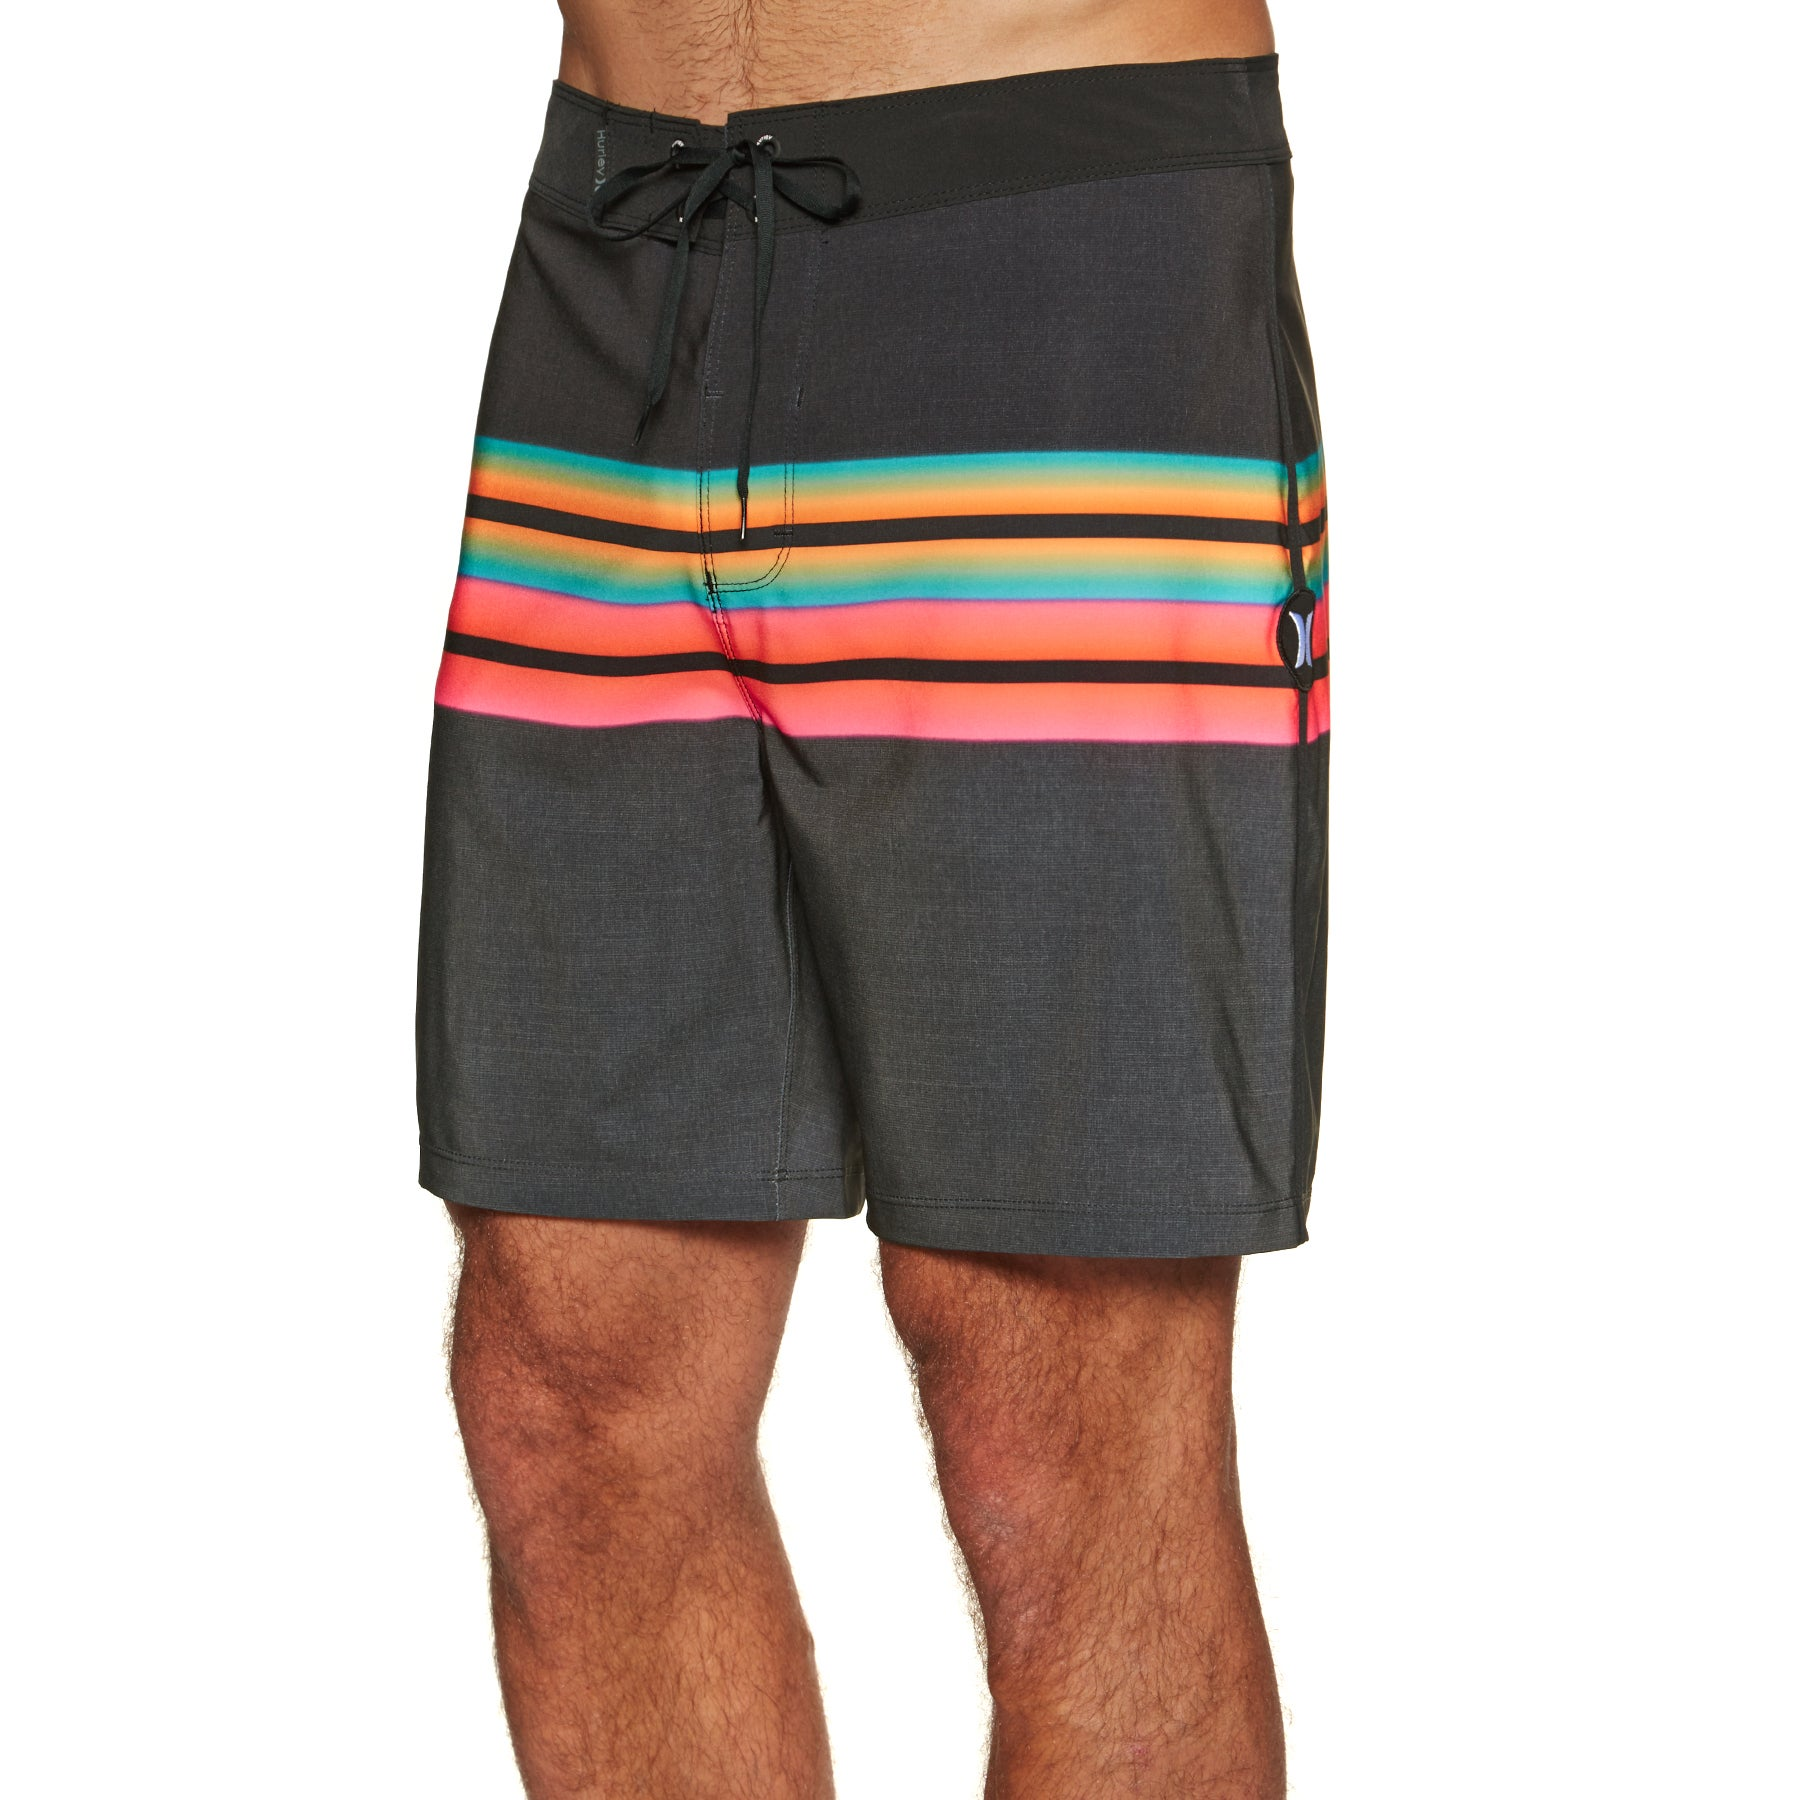 09104c76f0 Hurley Phantom Solace 18 inch Boardshorts available from Surfdome